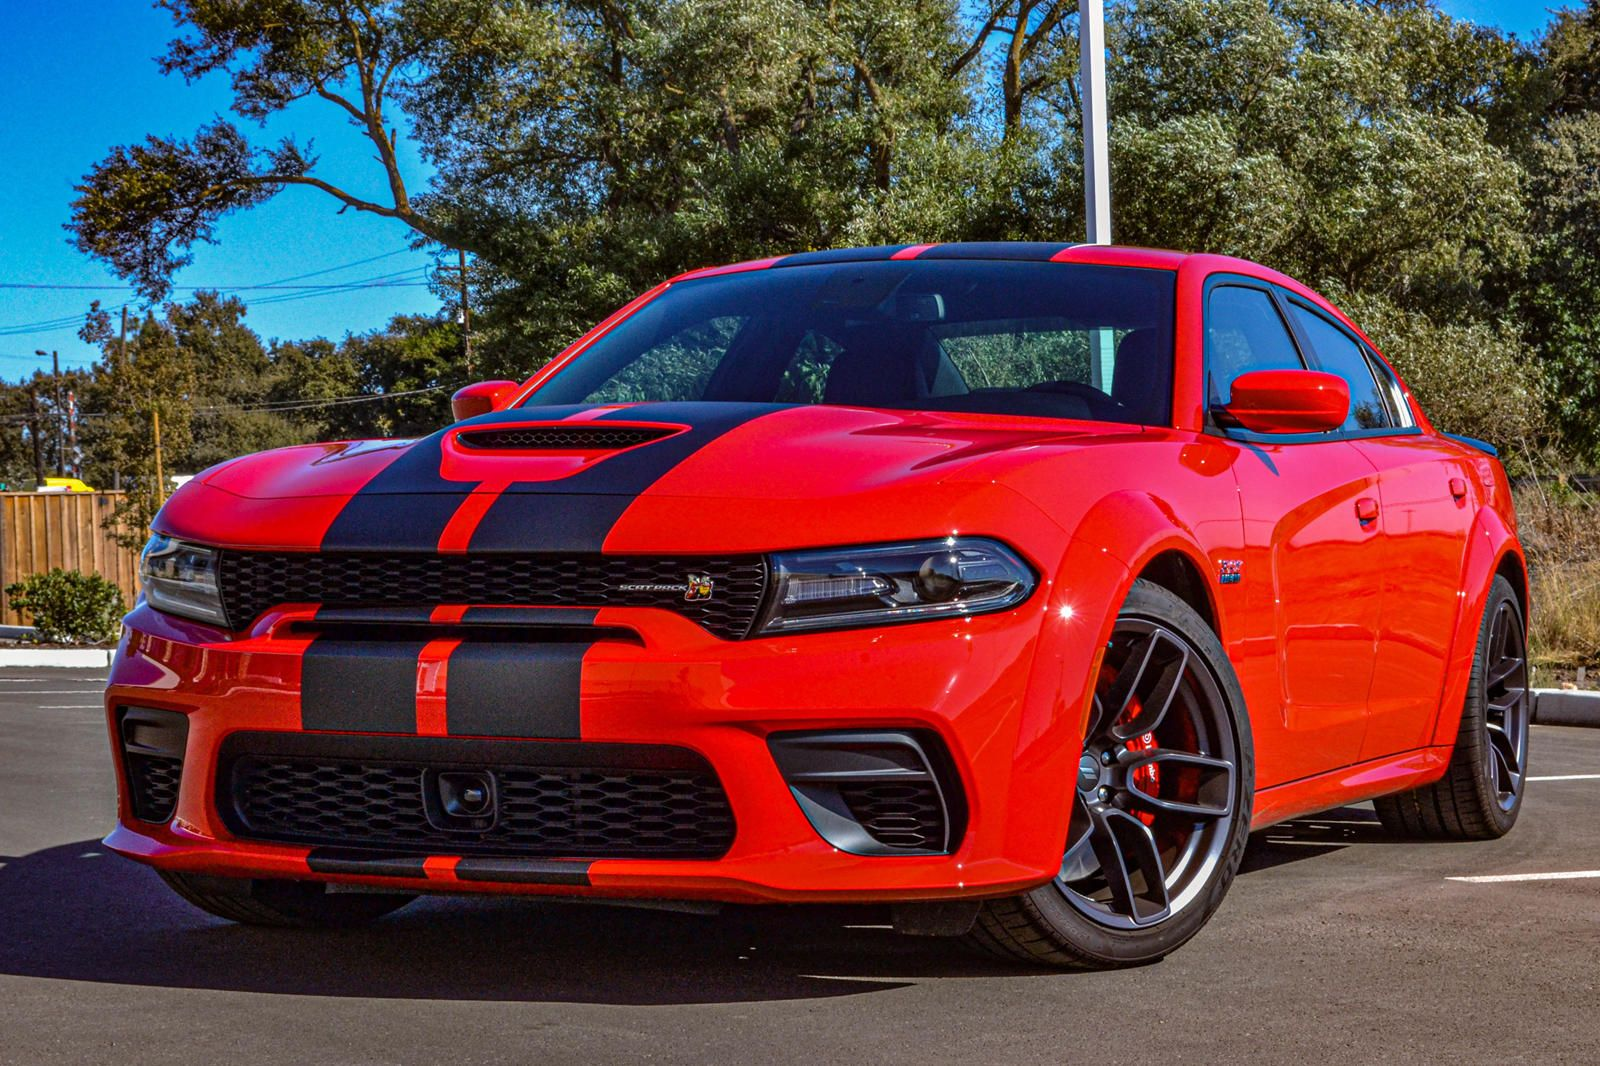 2020 Dodge Charger Srt Hellcat Widebody First Drive Review All Hail The King Now You Can Have America S Last Tr In 2020 Charger Srt Dodge Charger Charger Srt Hellcat